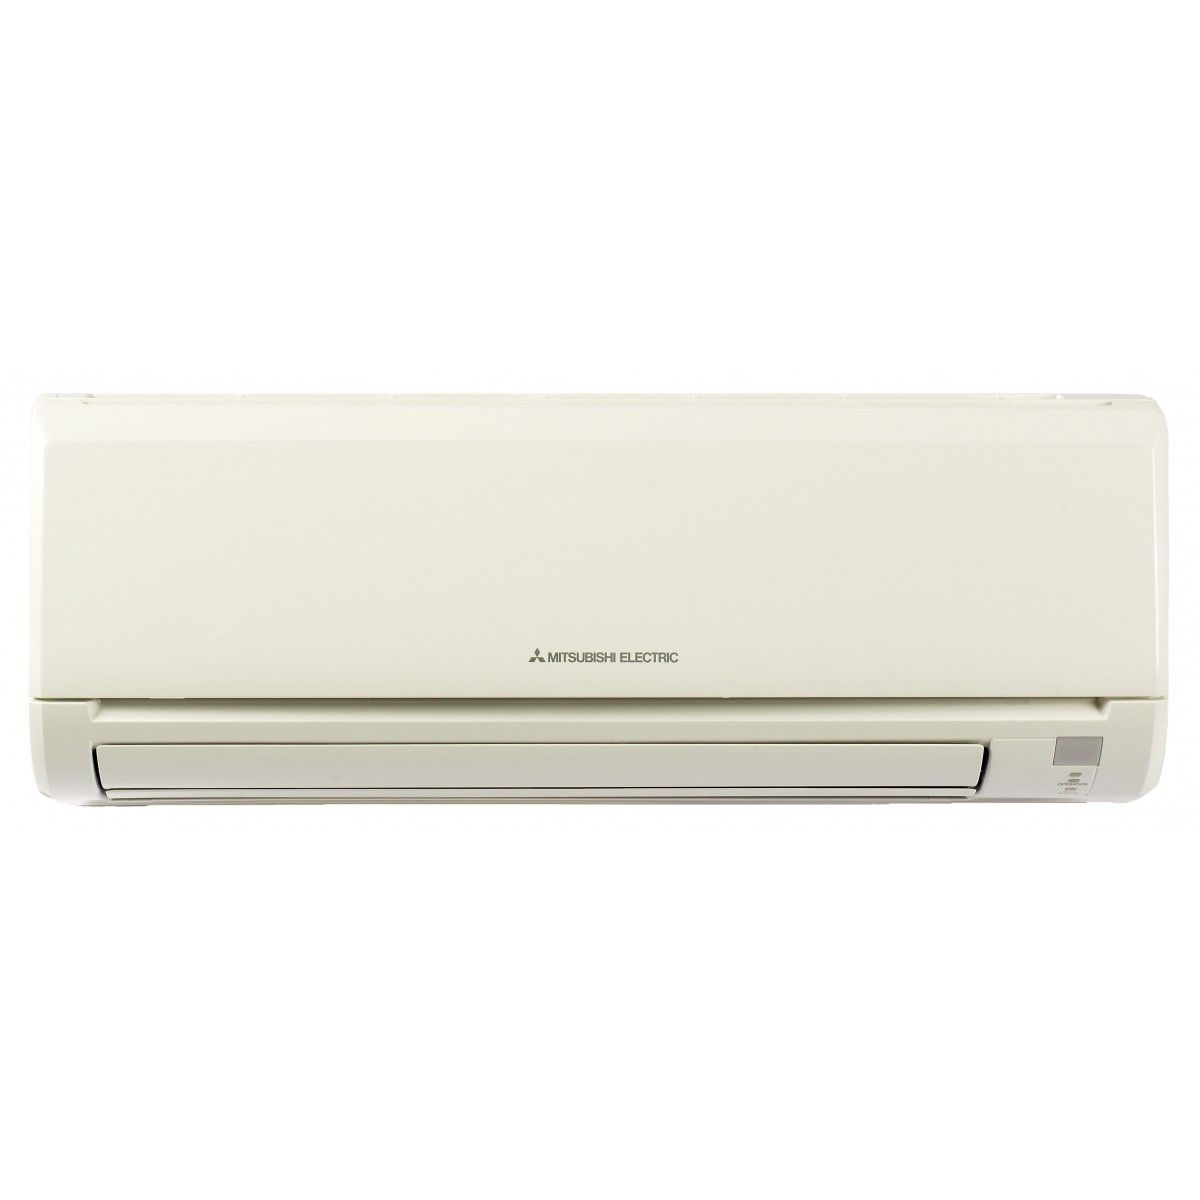 9k Btu Mitsubishi Msygl Wall Mounted Air Conditioner